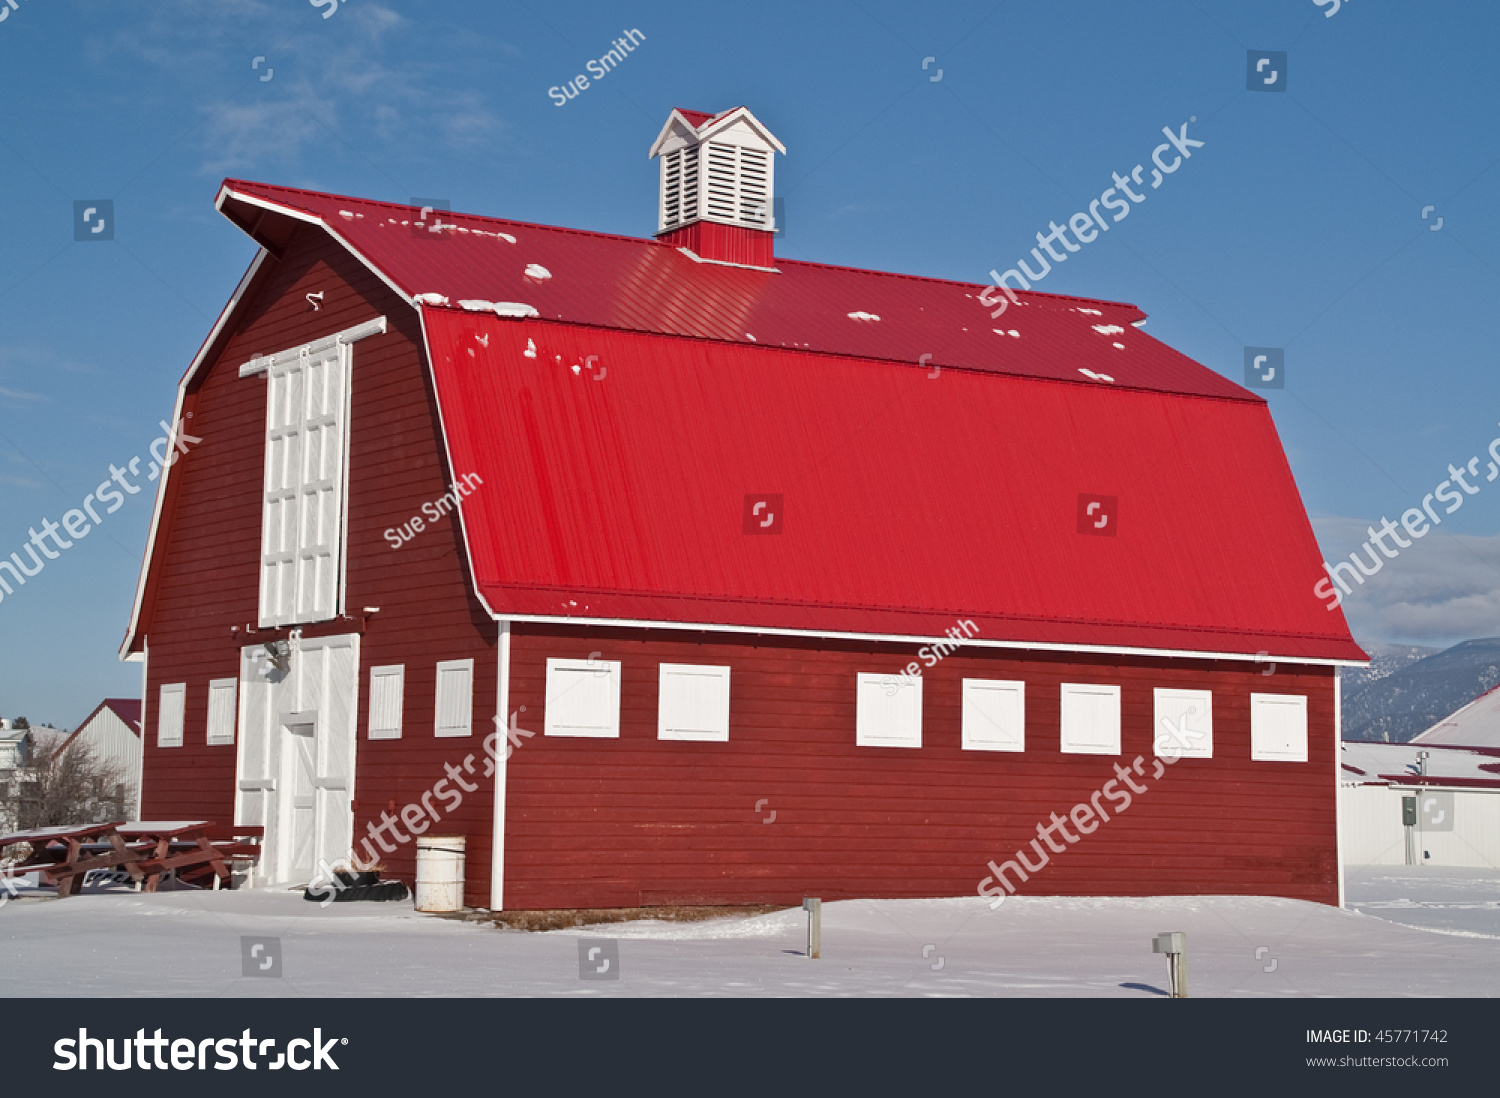 Big Red Barn With White Doors And Trim, A Red Metal Roof, And A